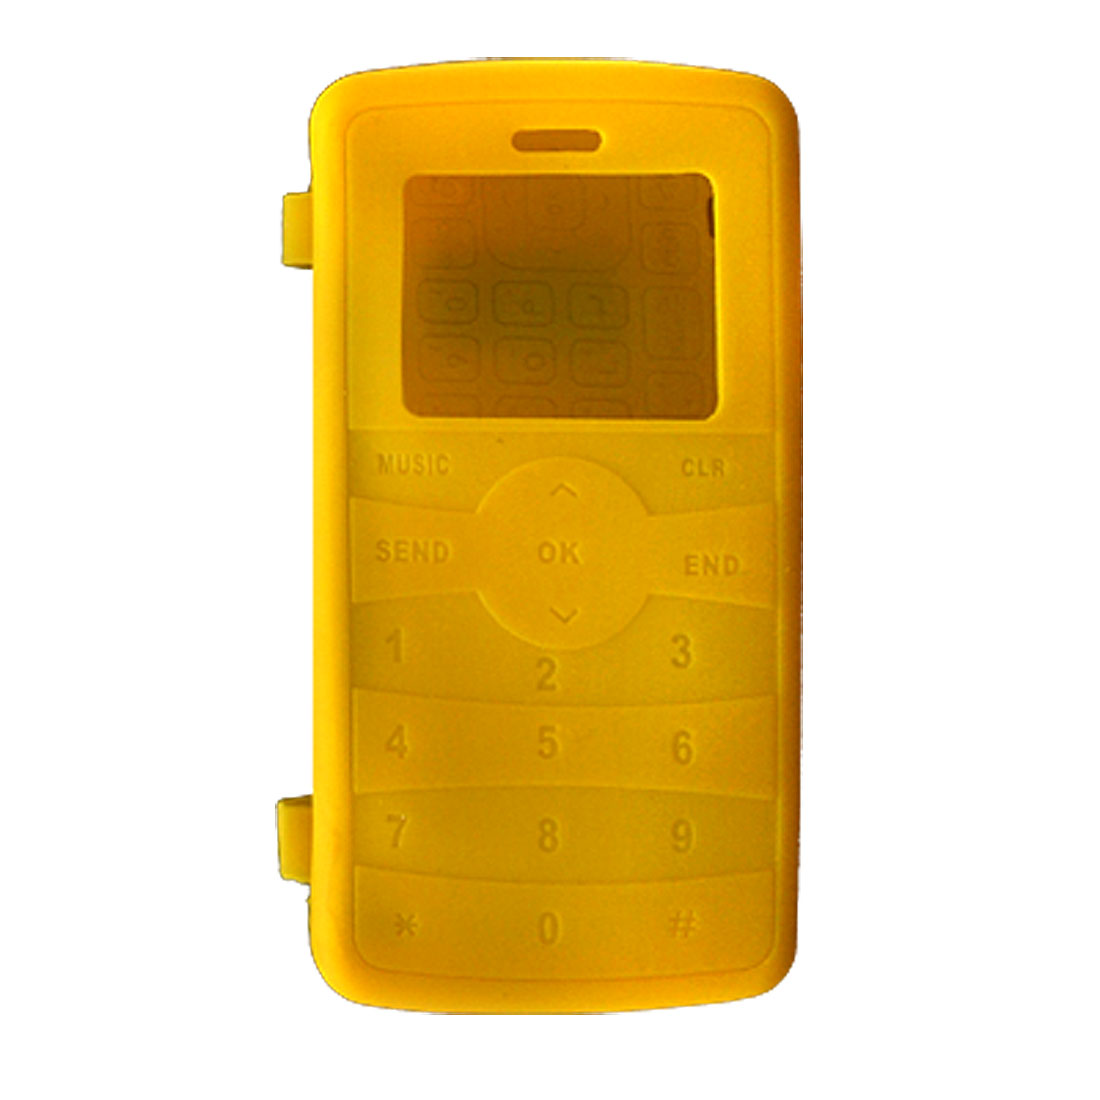 Silicone Skin Case Cover for LG VX9100 Yellow